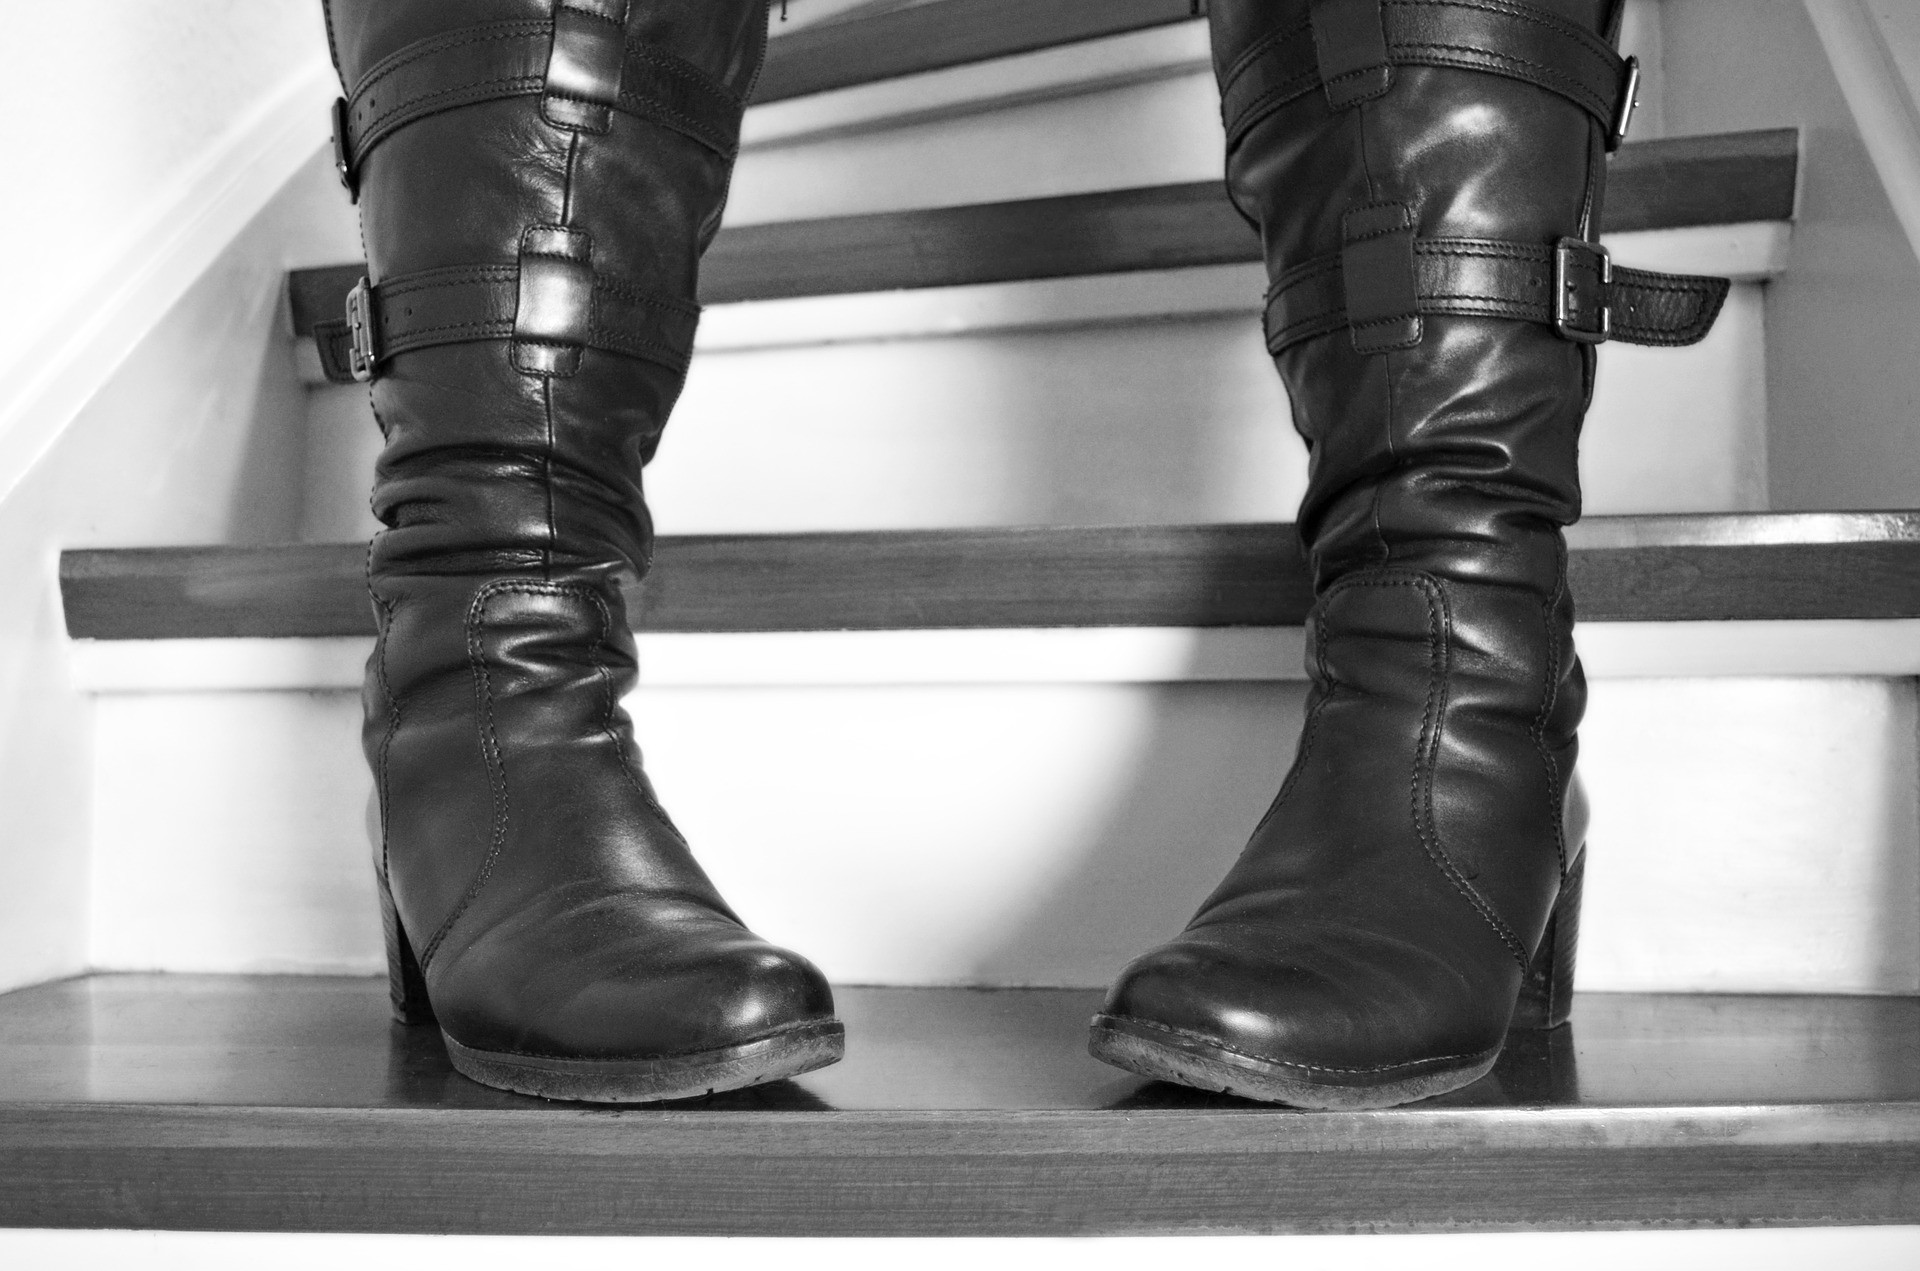 Close-up of someone in leather boots on stairs, toes pointed inwards